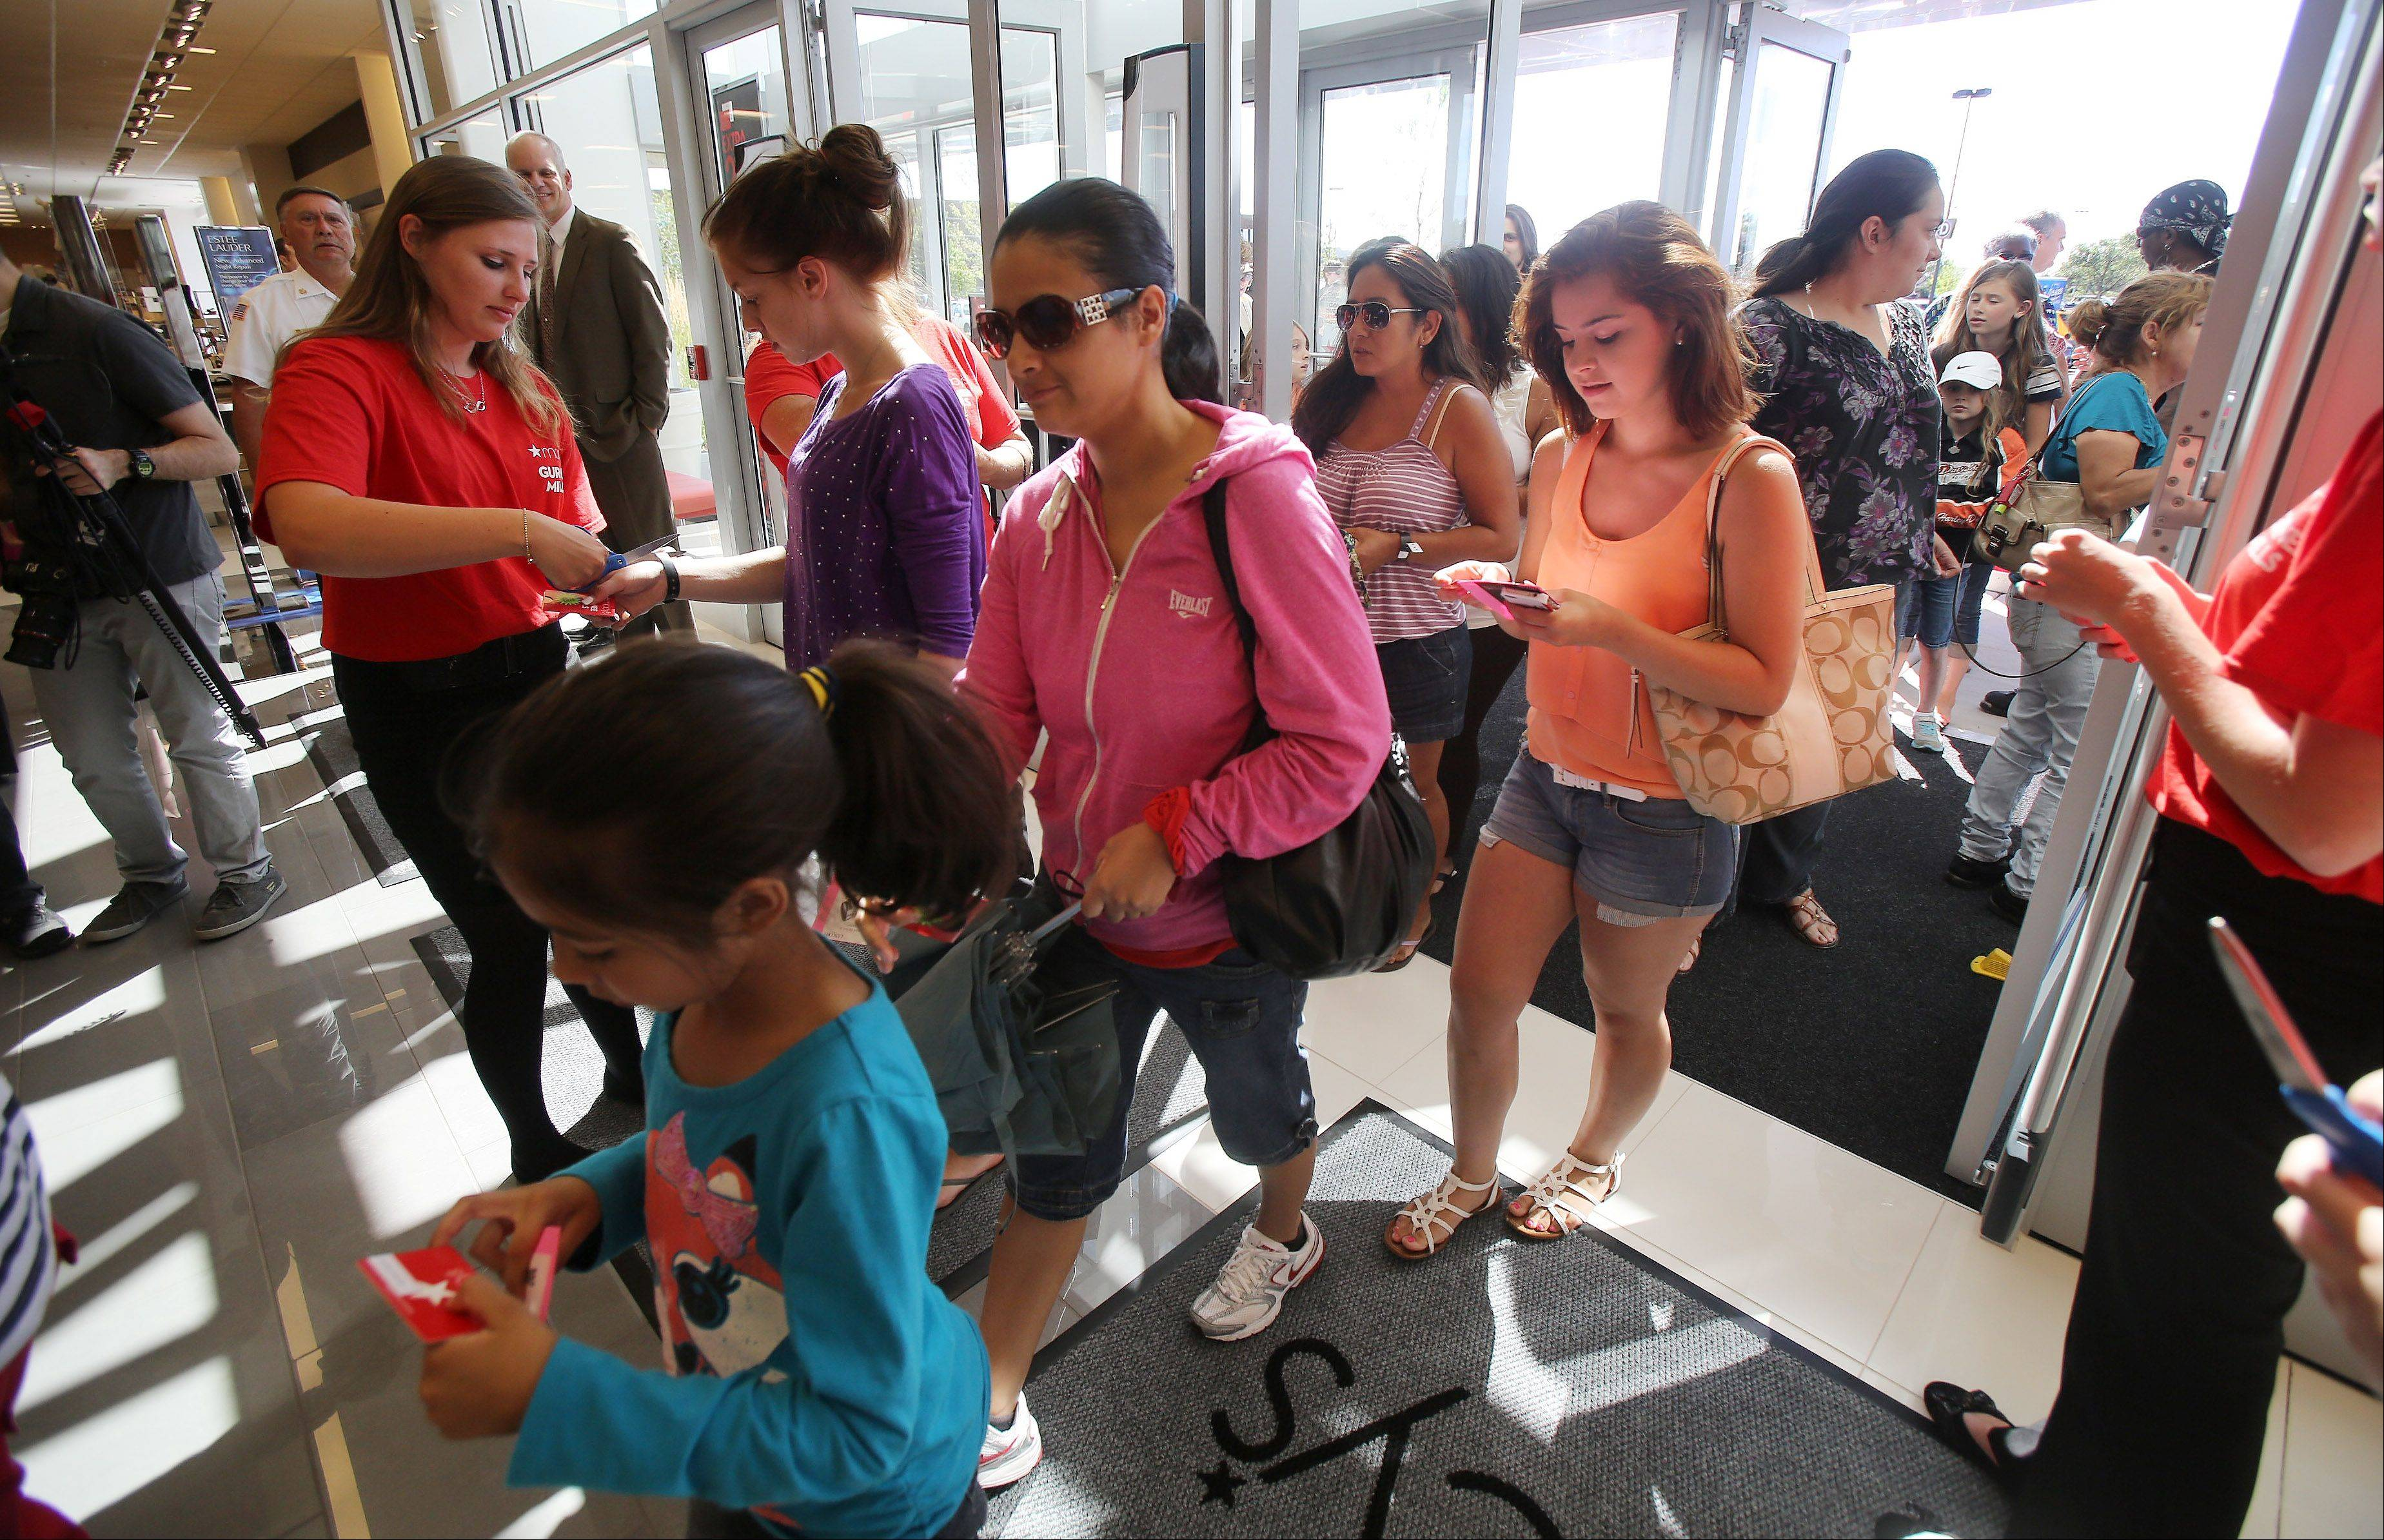 Customers receive store gift cards as the doors open for Wednesday's grand opening of Macy's in Gurnee Mills. The first 300 customers received a gift card.